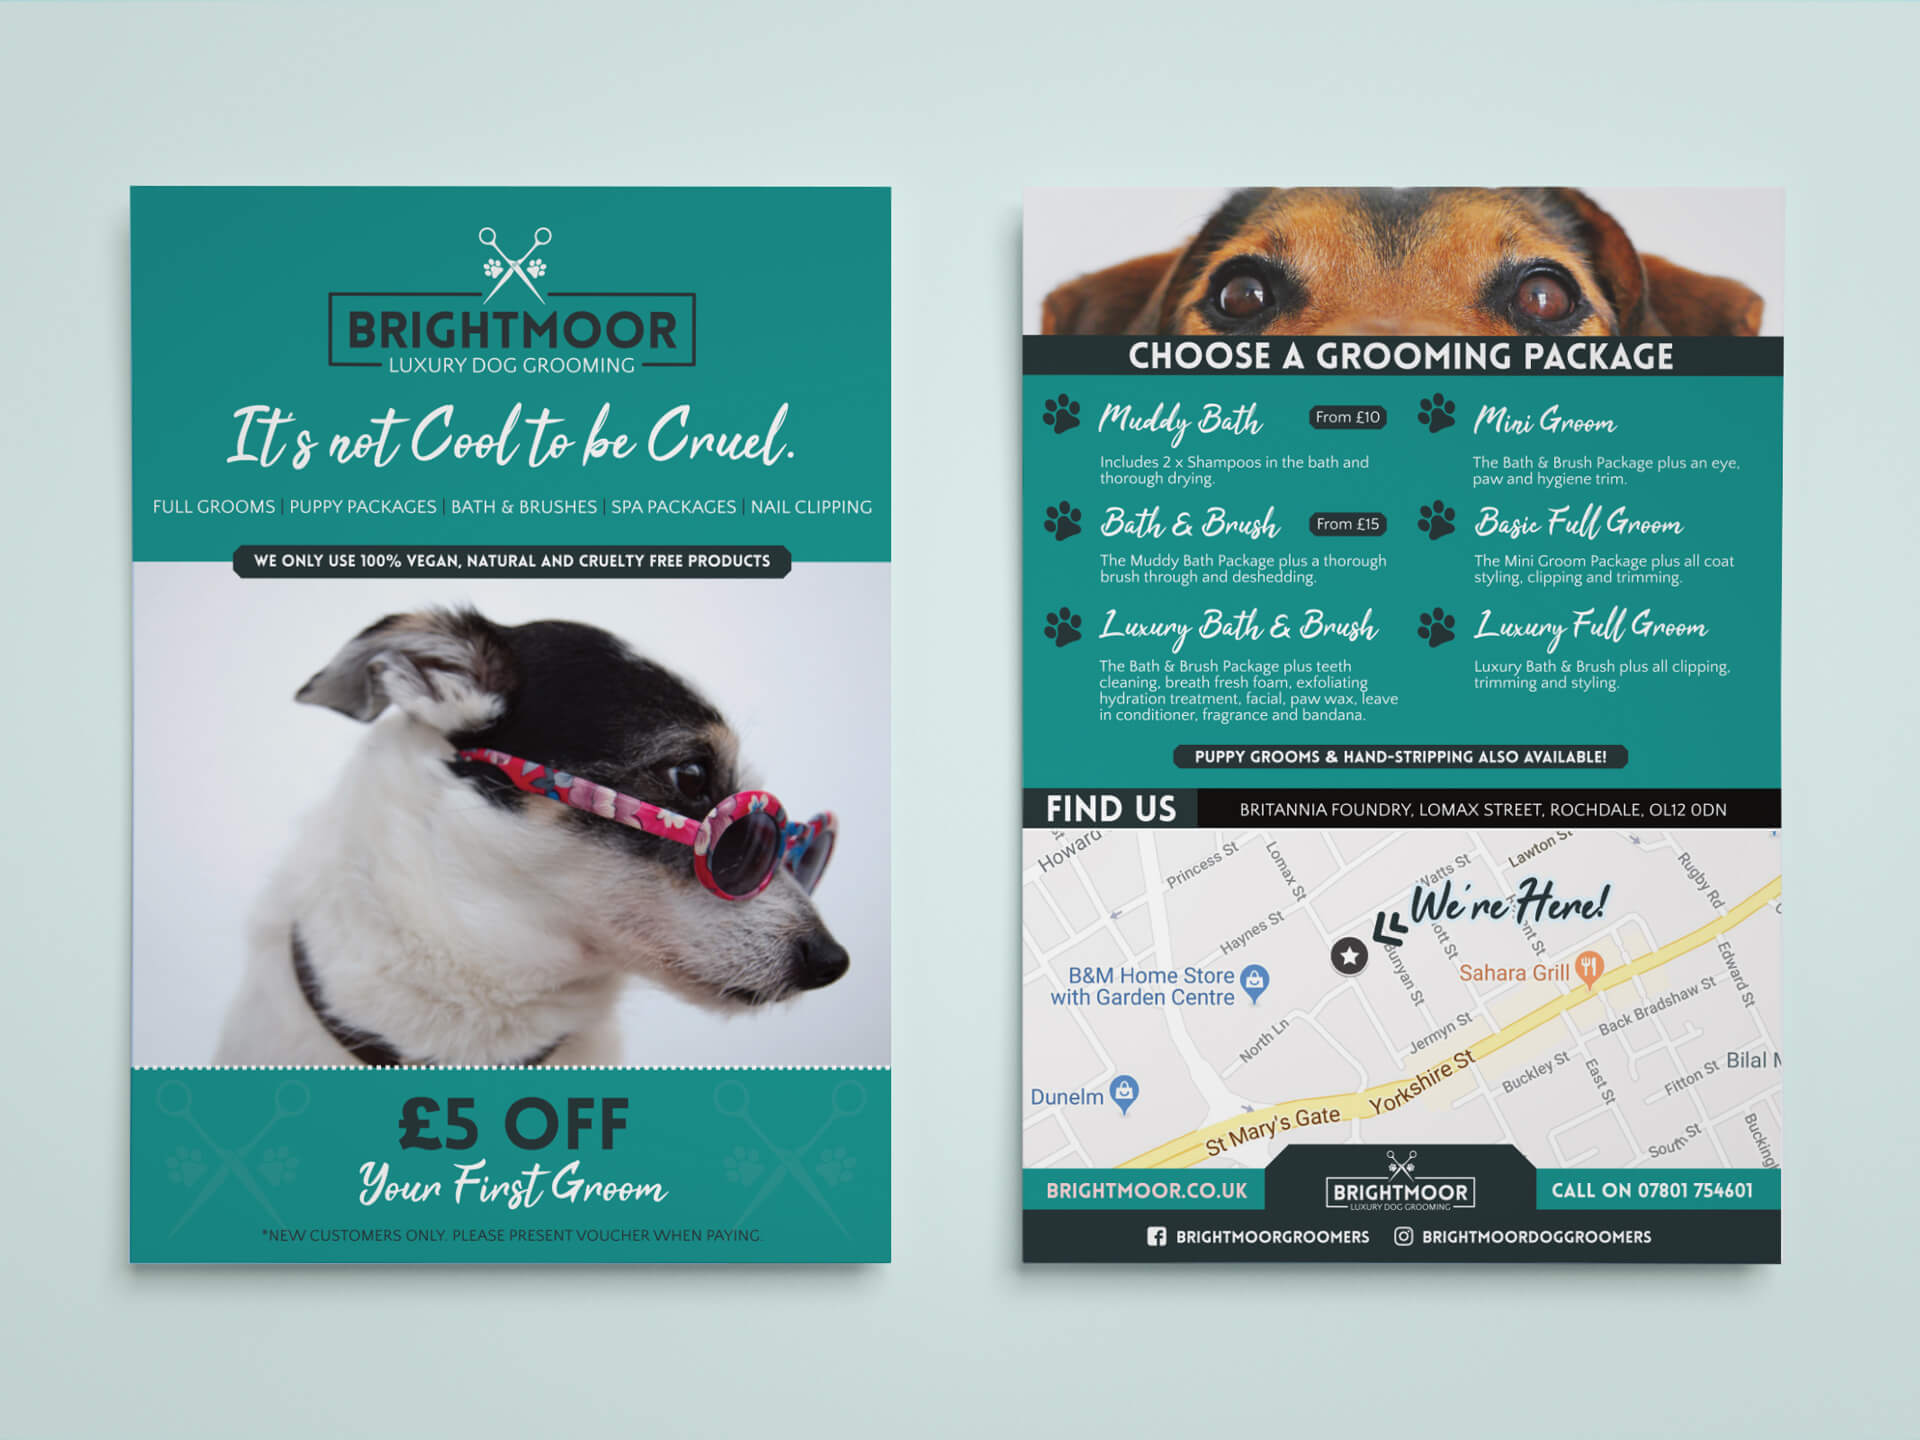 Brightmoor Luxury Dog Grooming A5 Leaflet